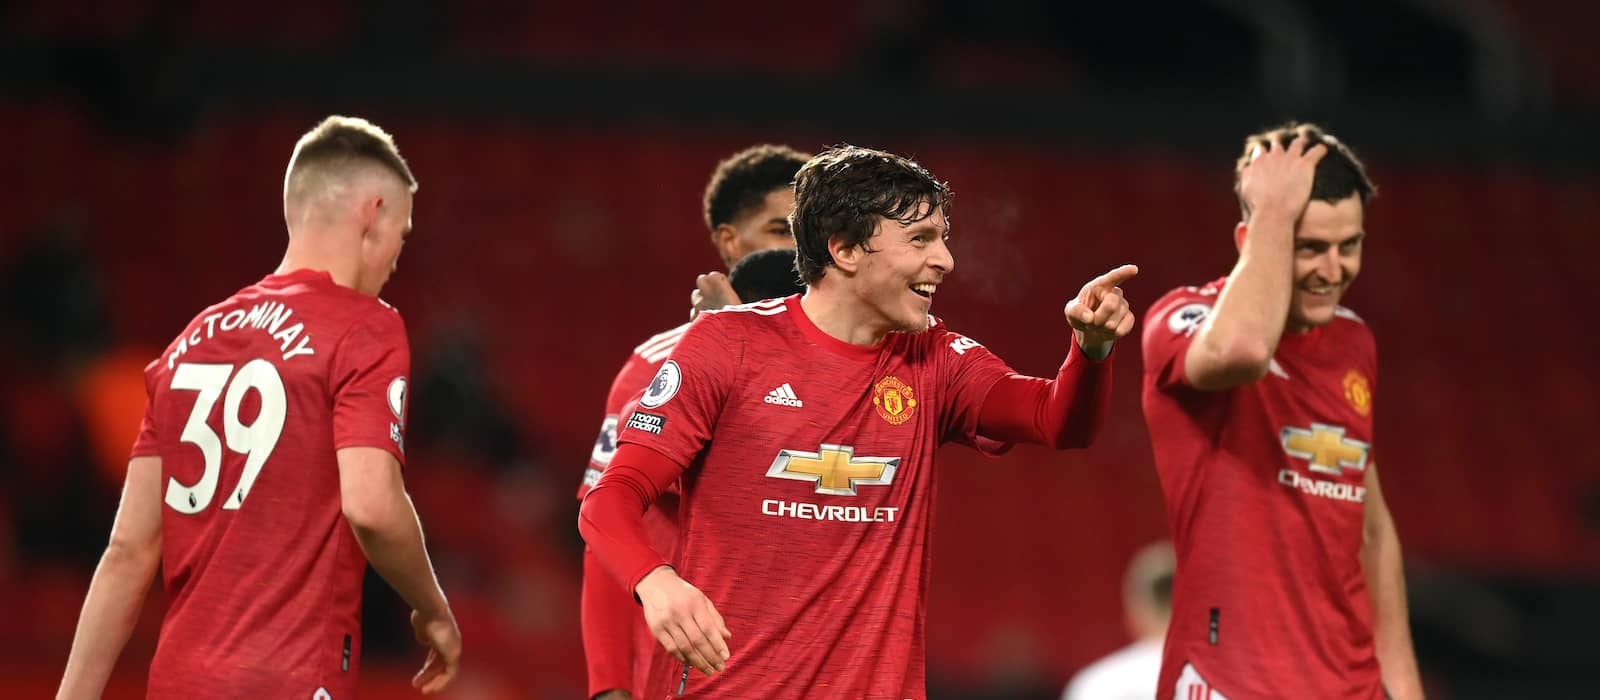 Man United in blistering form in pulsating encounter with Leeds United